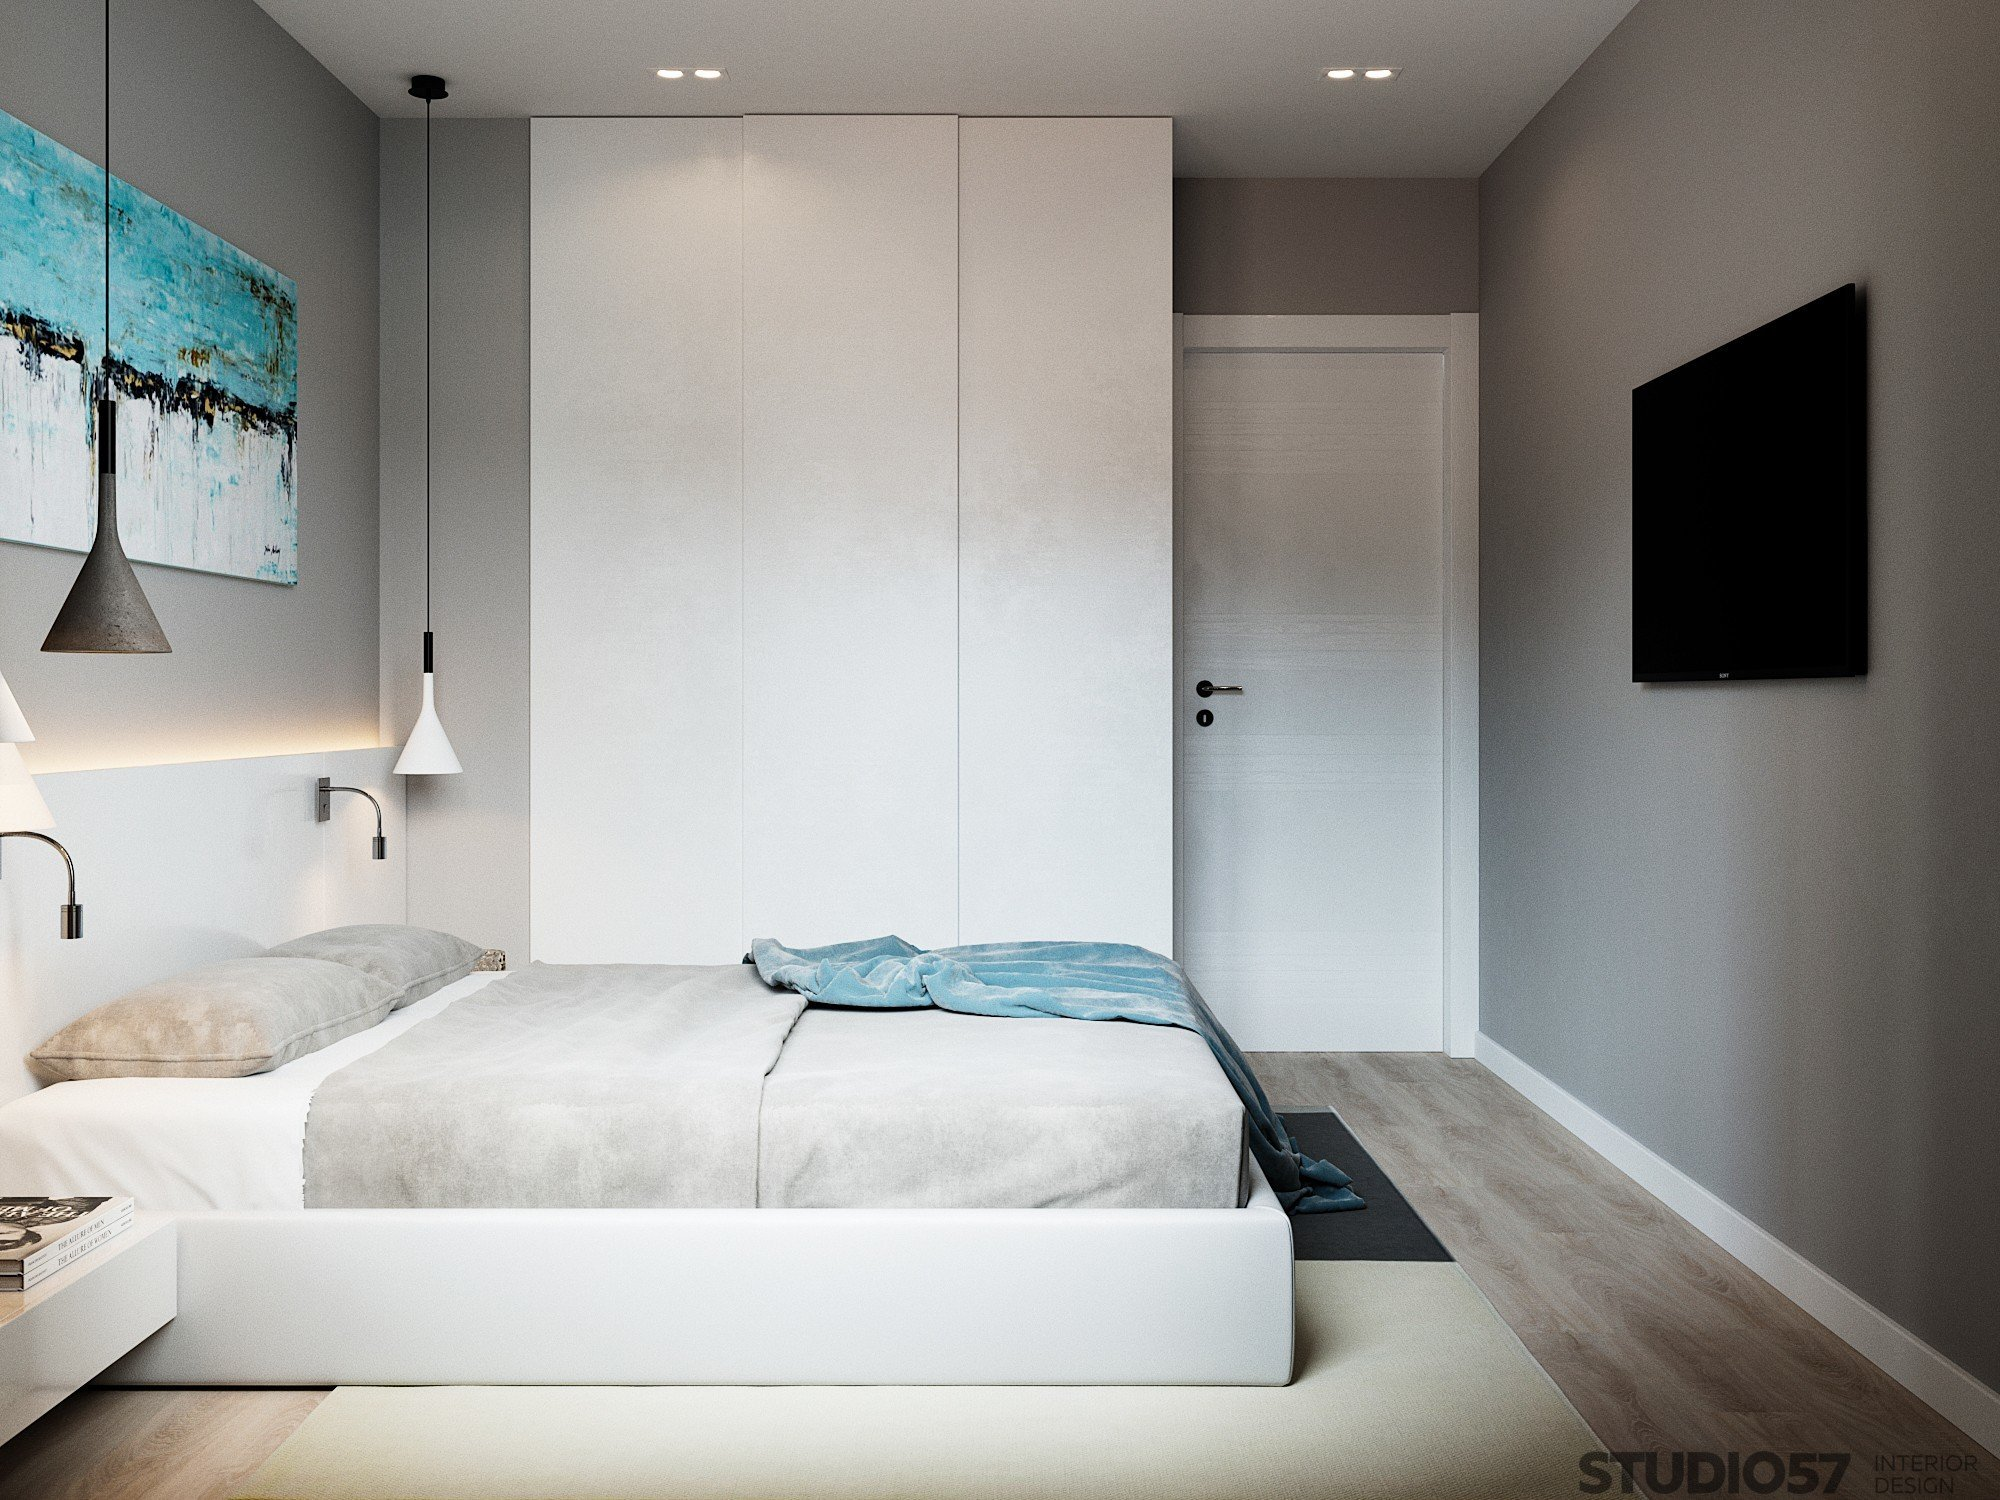 Wardrobe for a small bedroom. Photos